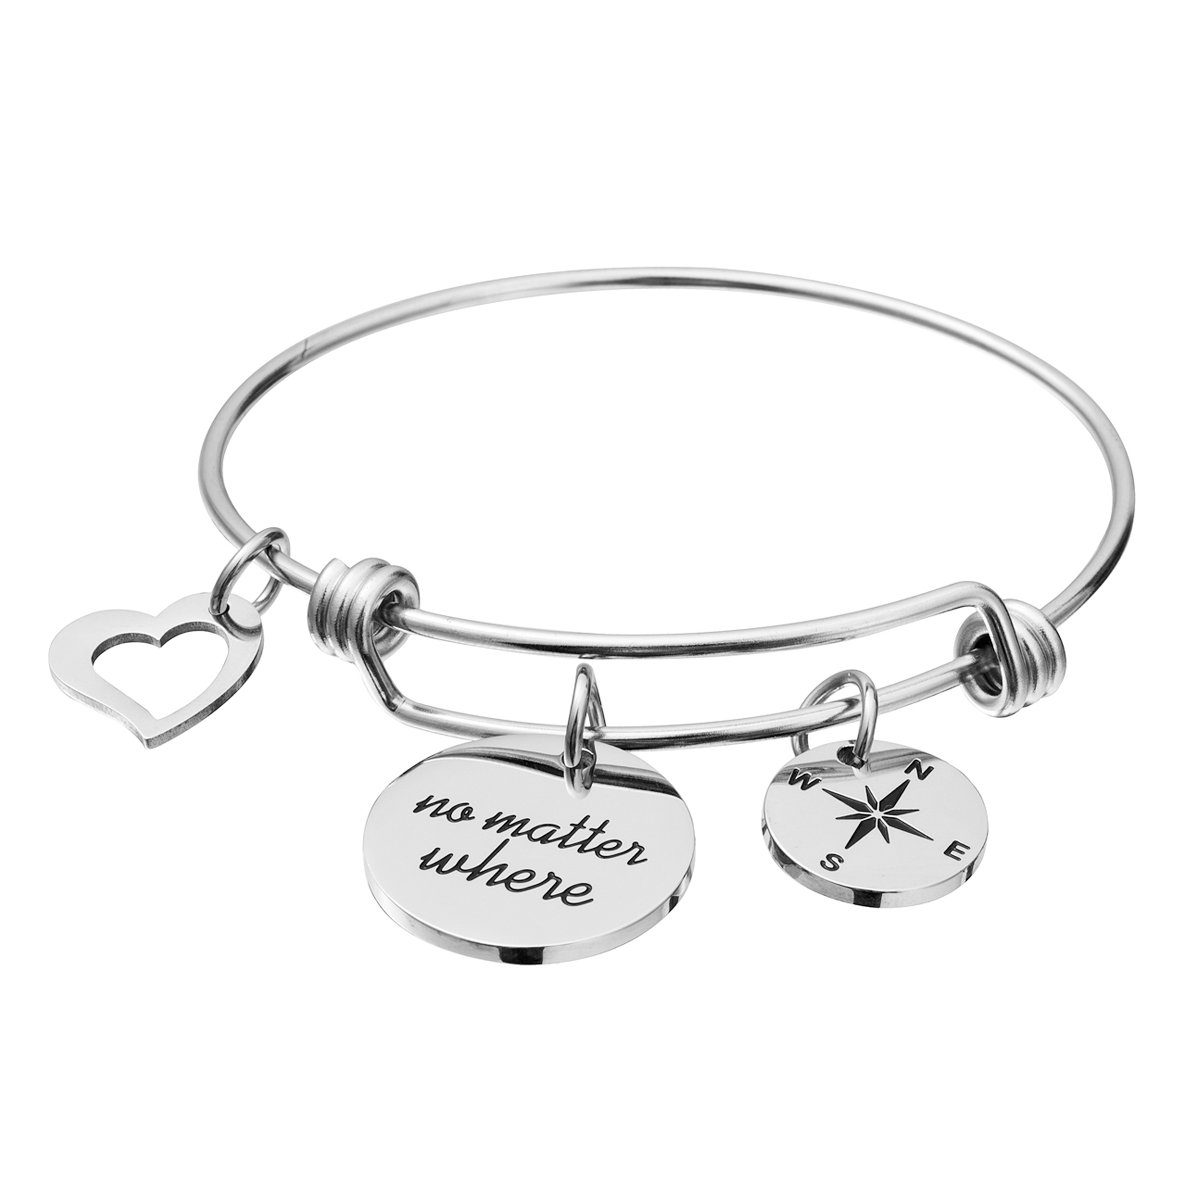 omodofo Friend Charm Bracelet Stainless Steel Adjustable Bangle Long Distance Friendship Gifts BFF Bracelet Jewelry for Girls